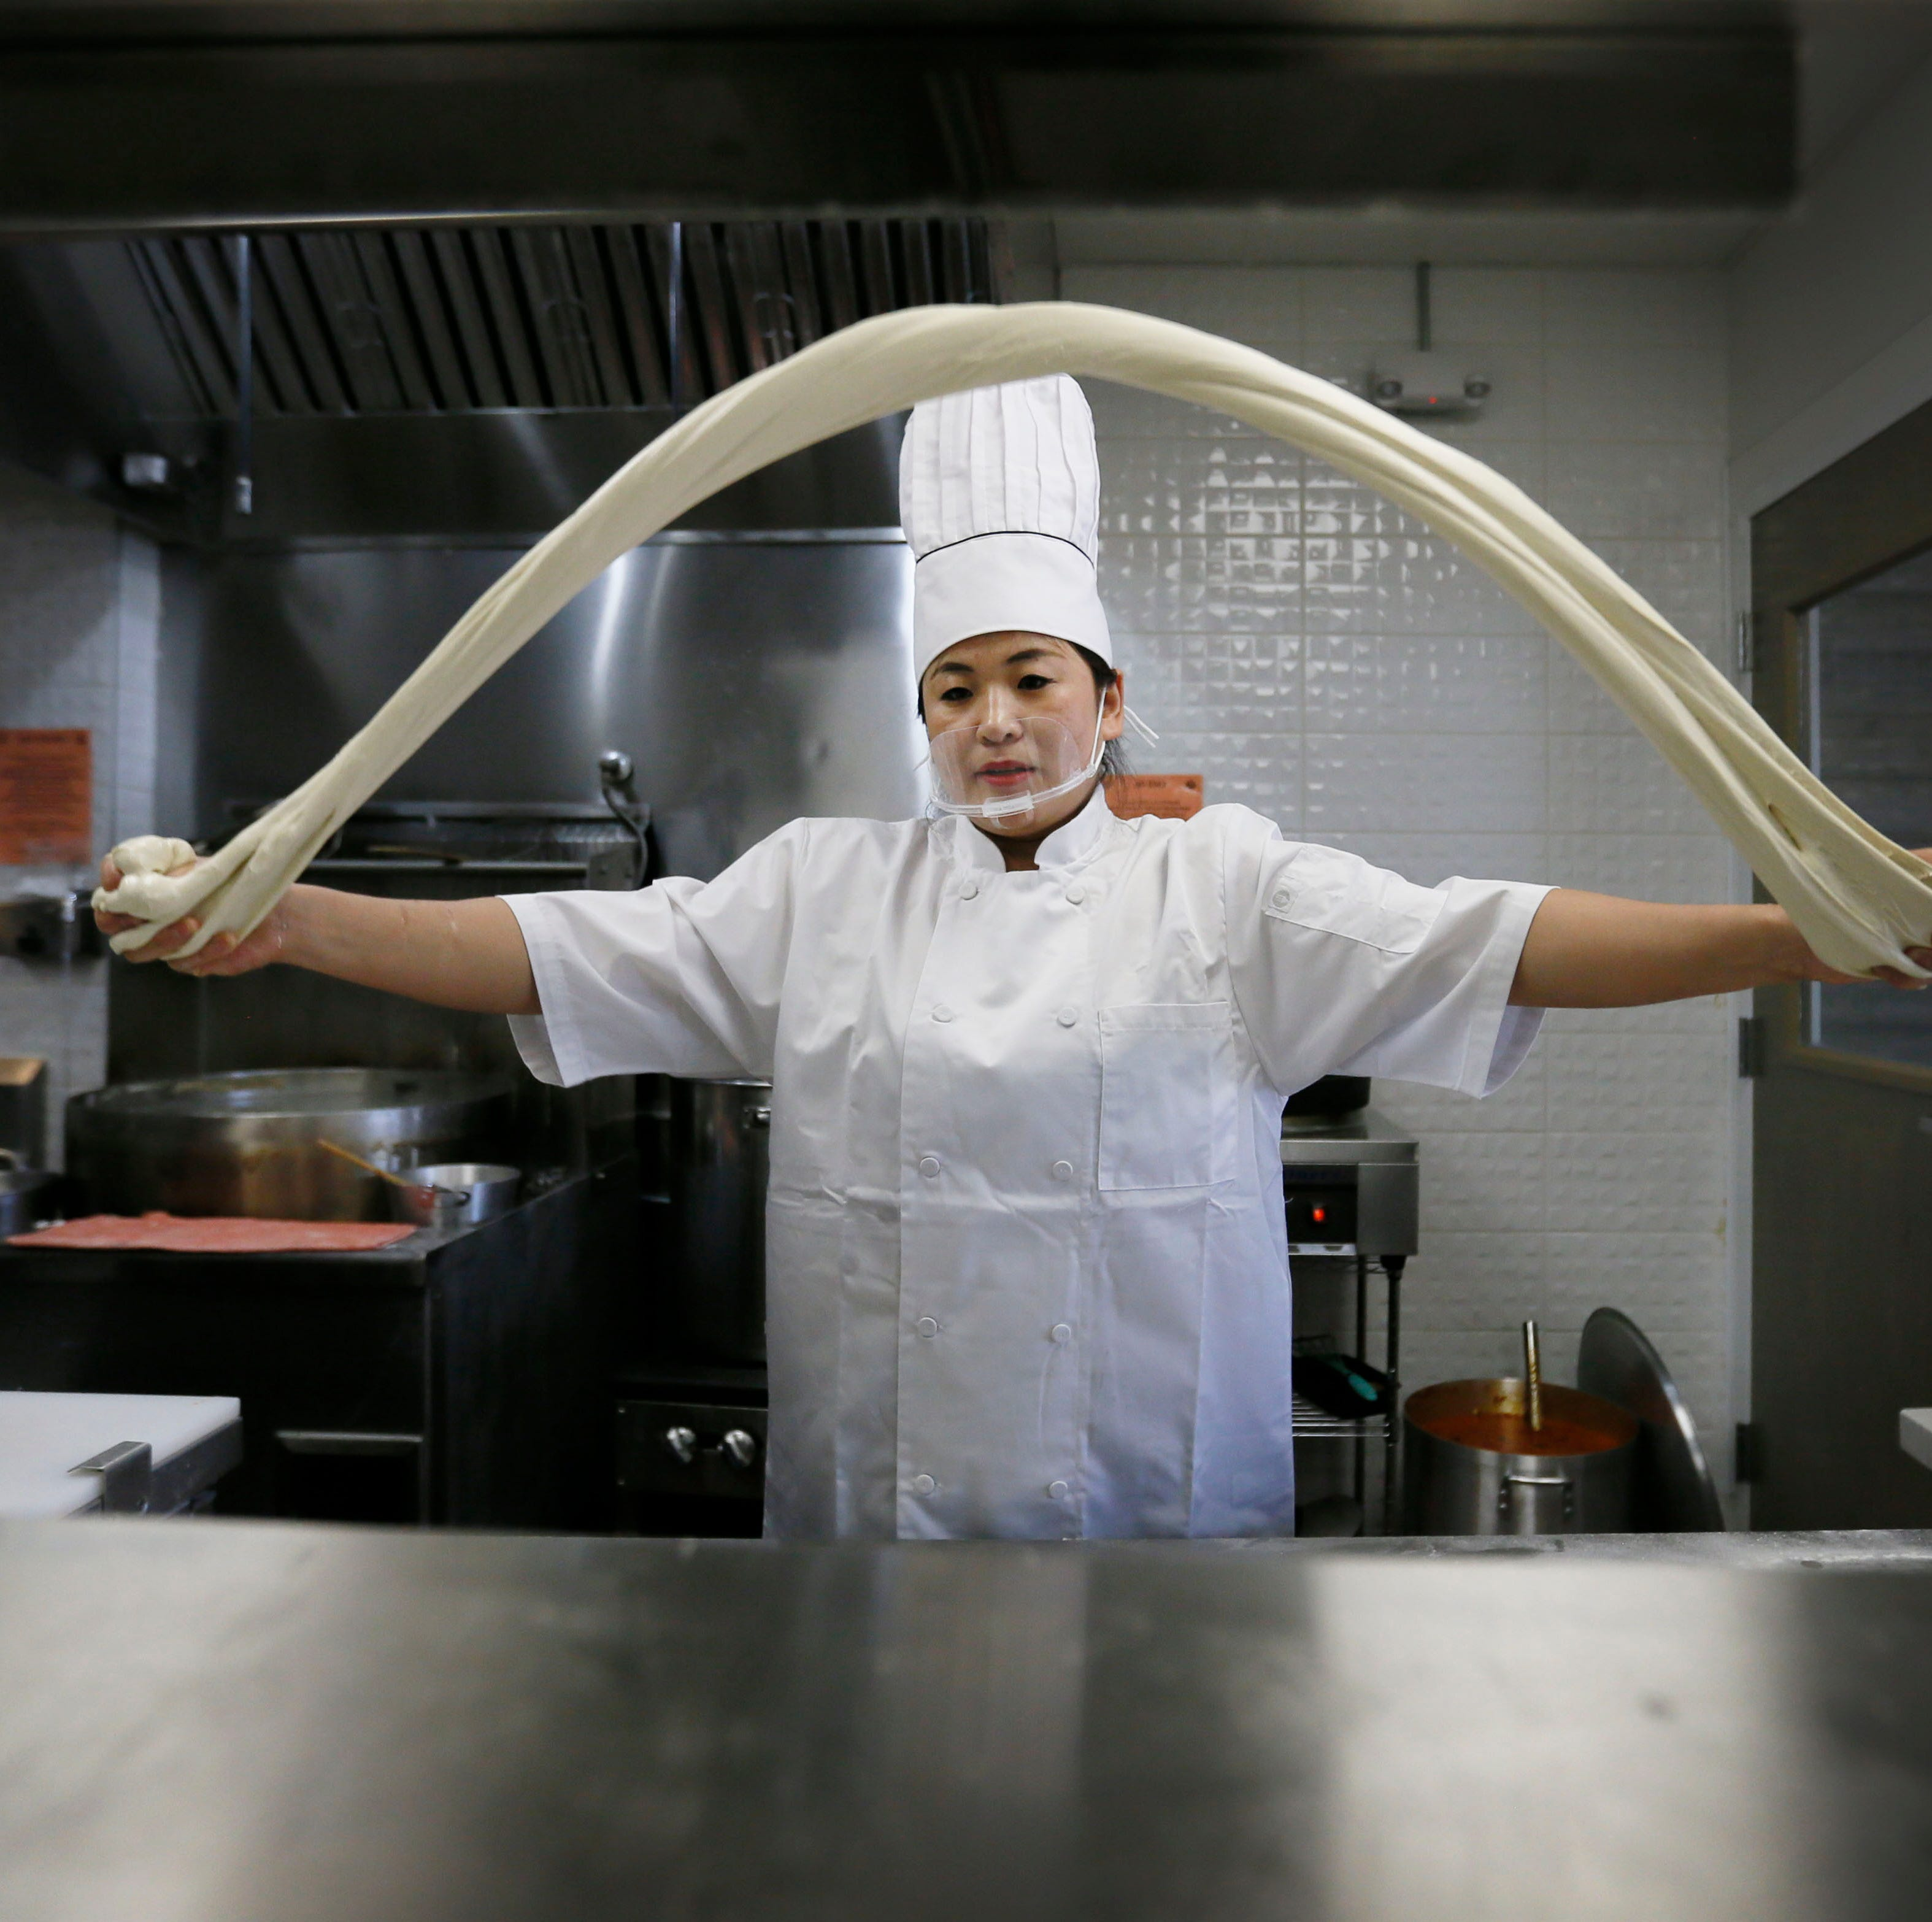 New Chinese restaurant brings New York chefs, authentic hand-pulled noodles to El Paso